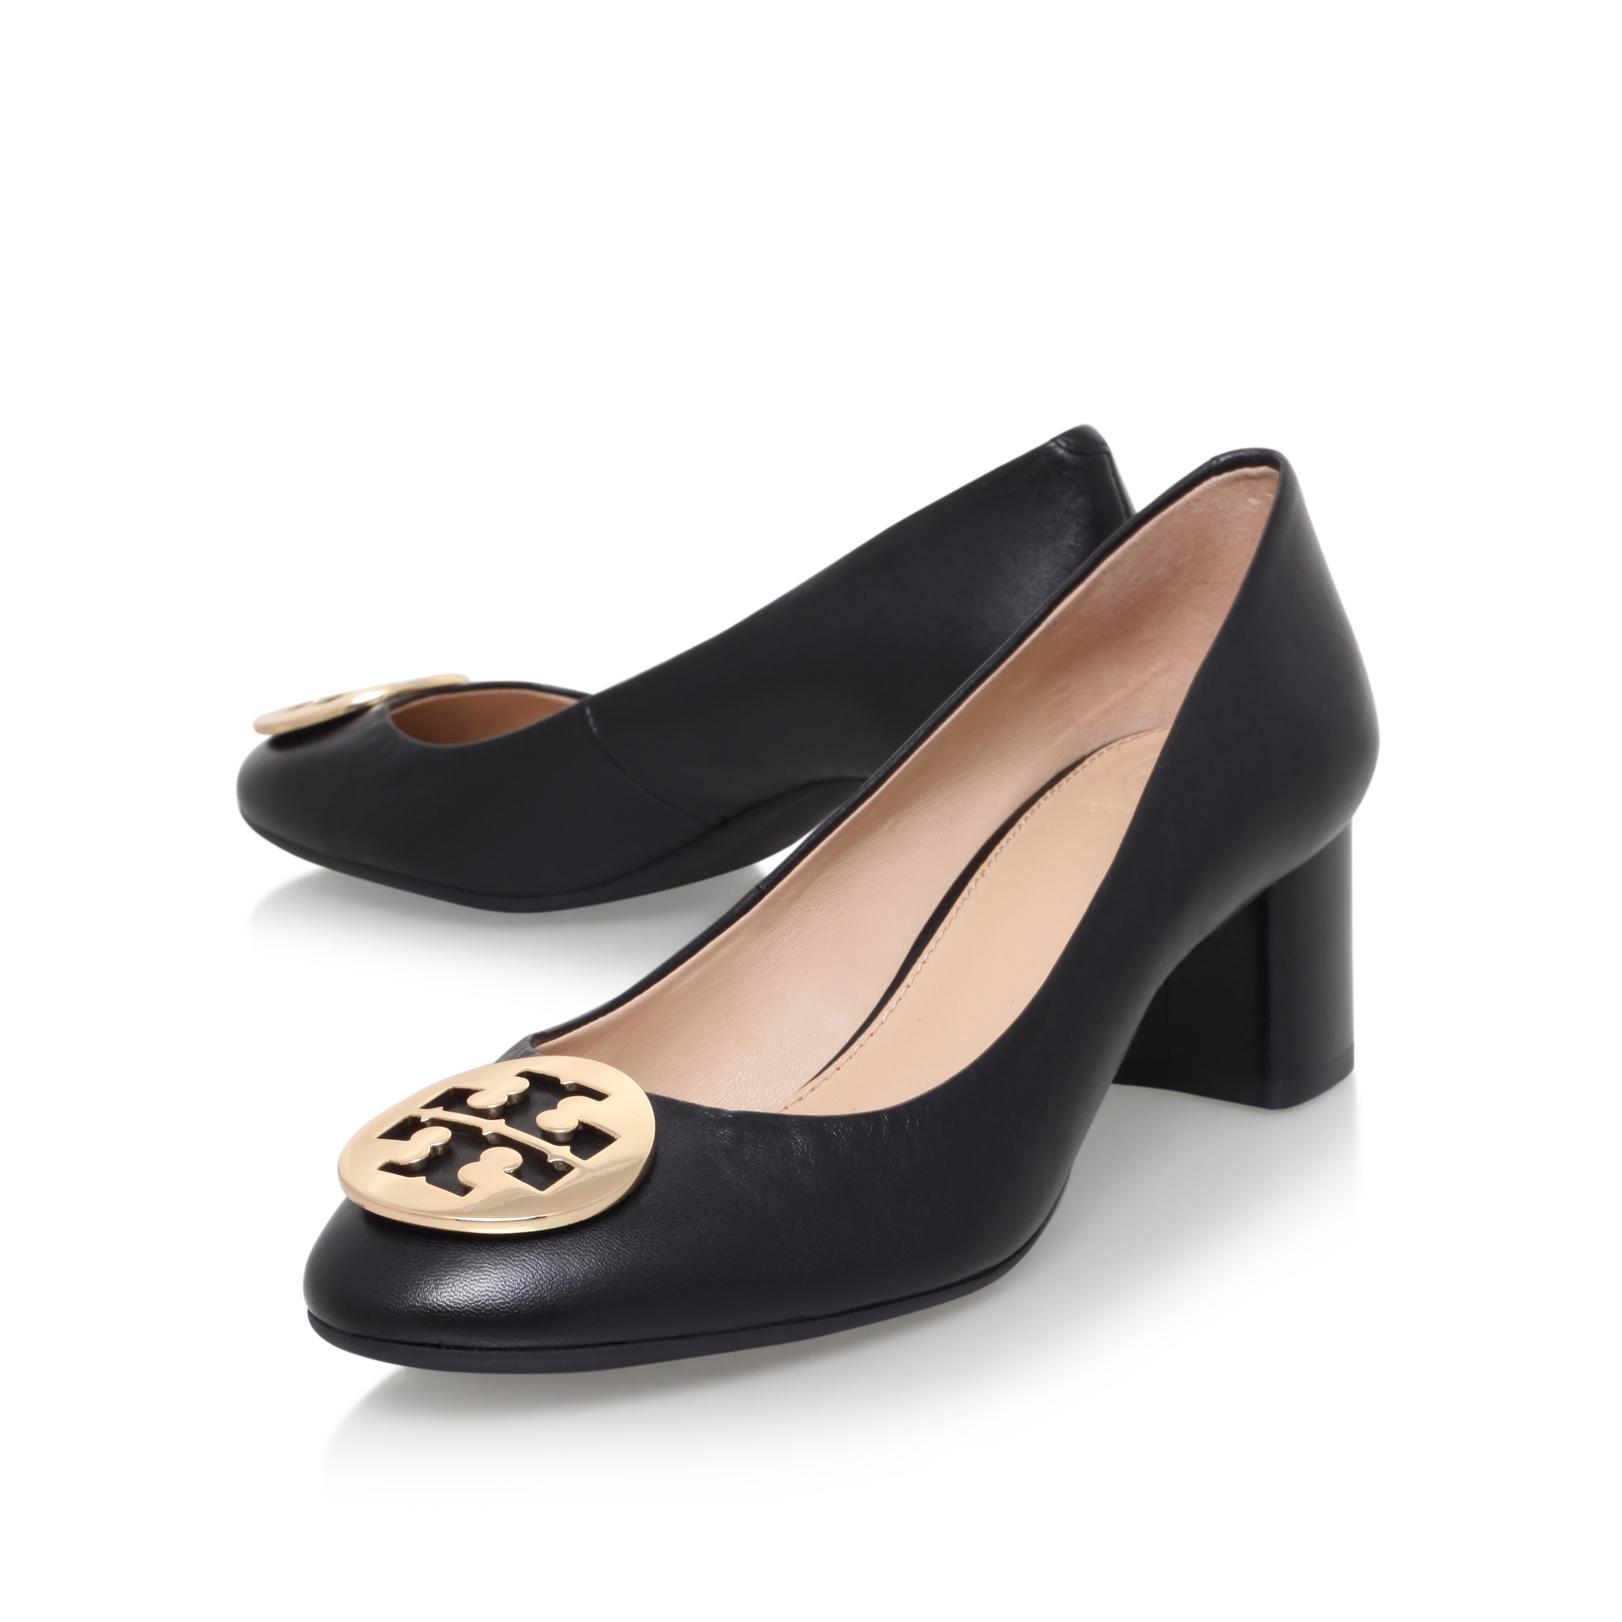 Tory Burch Hope Leather Pumps